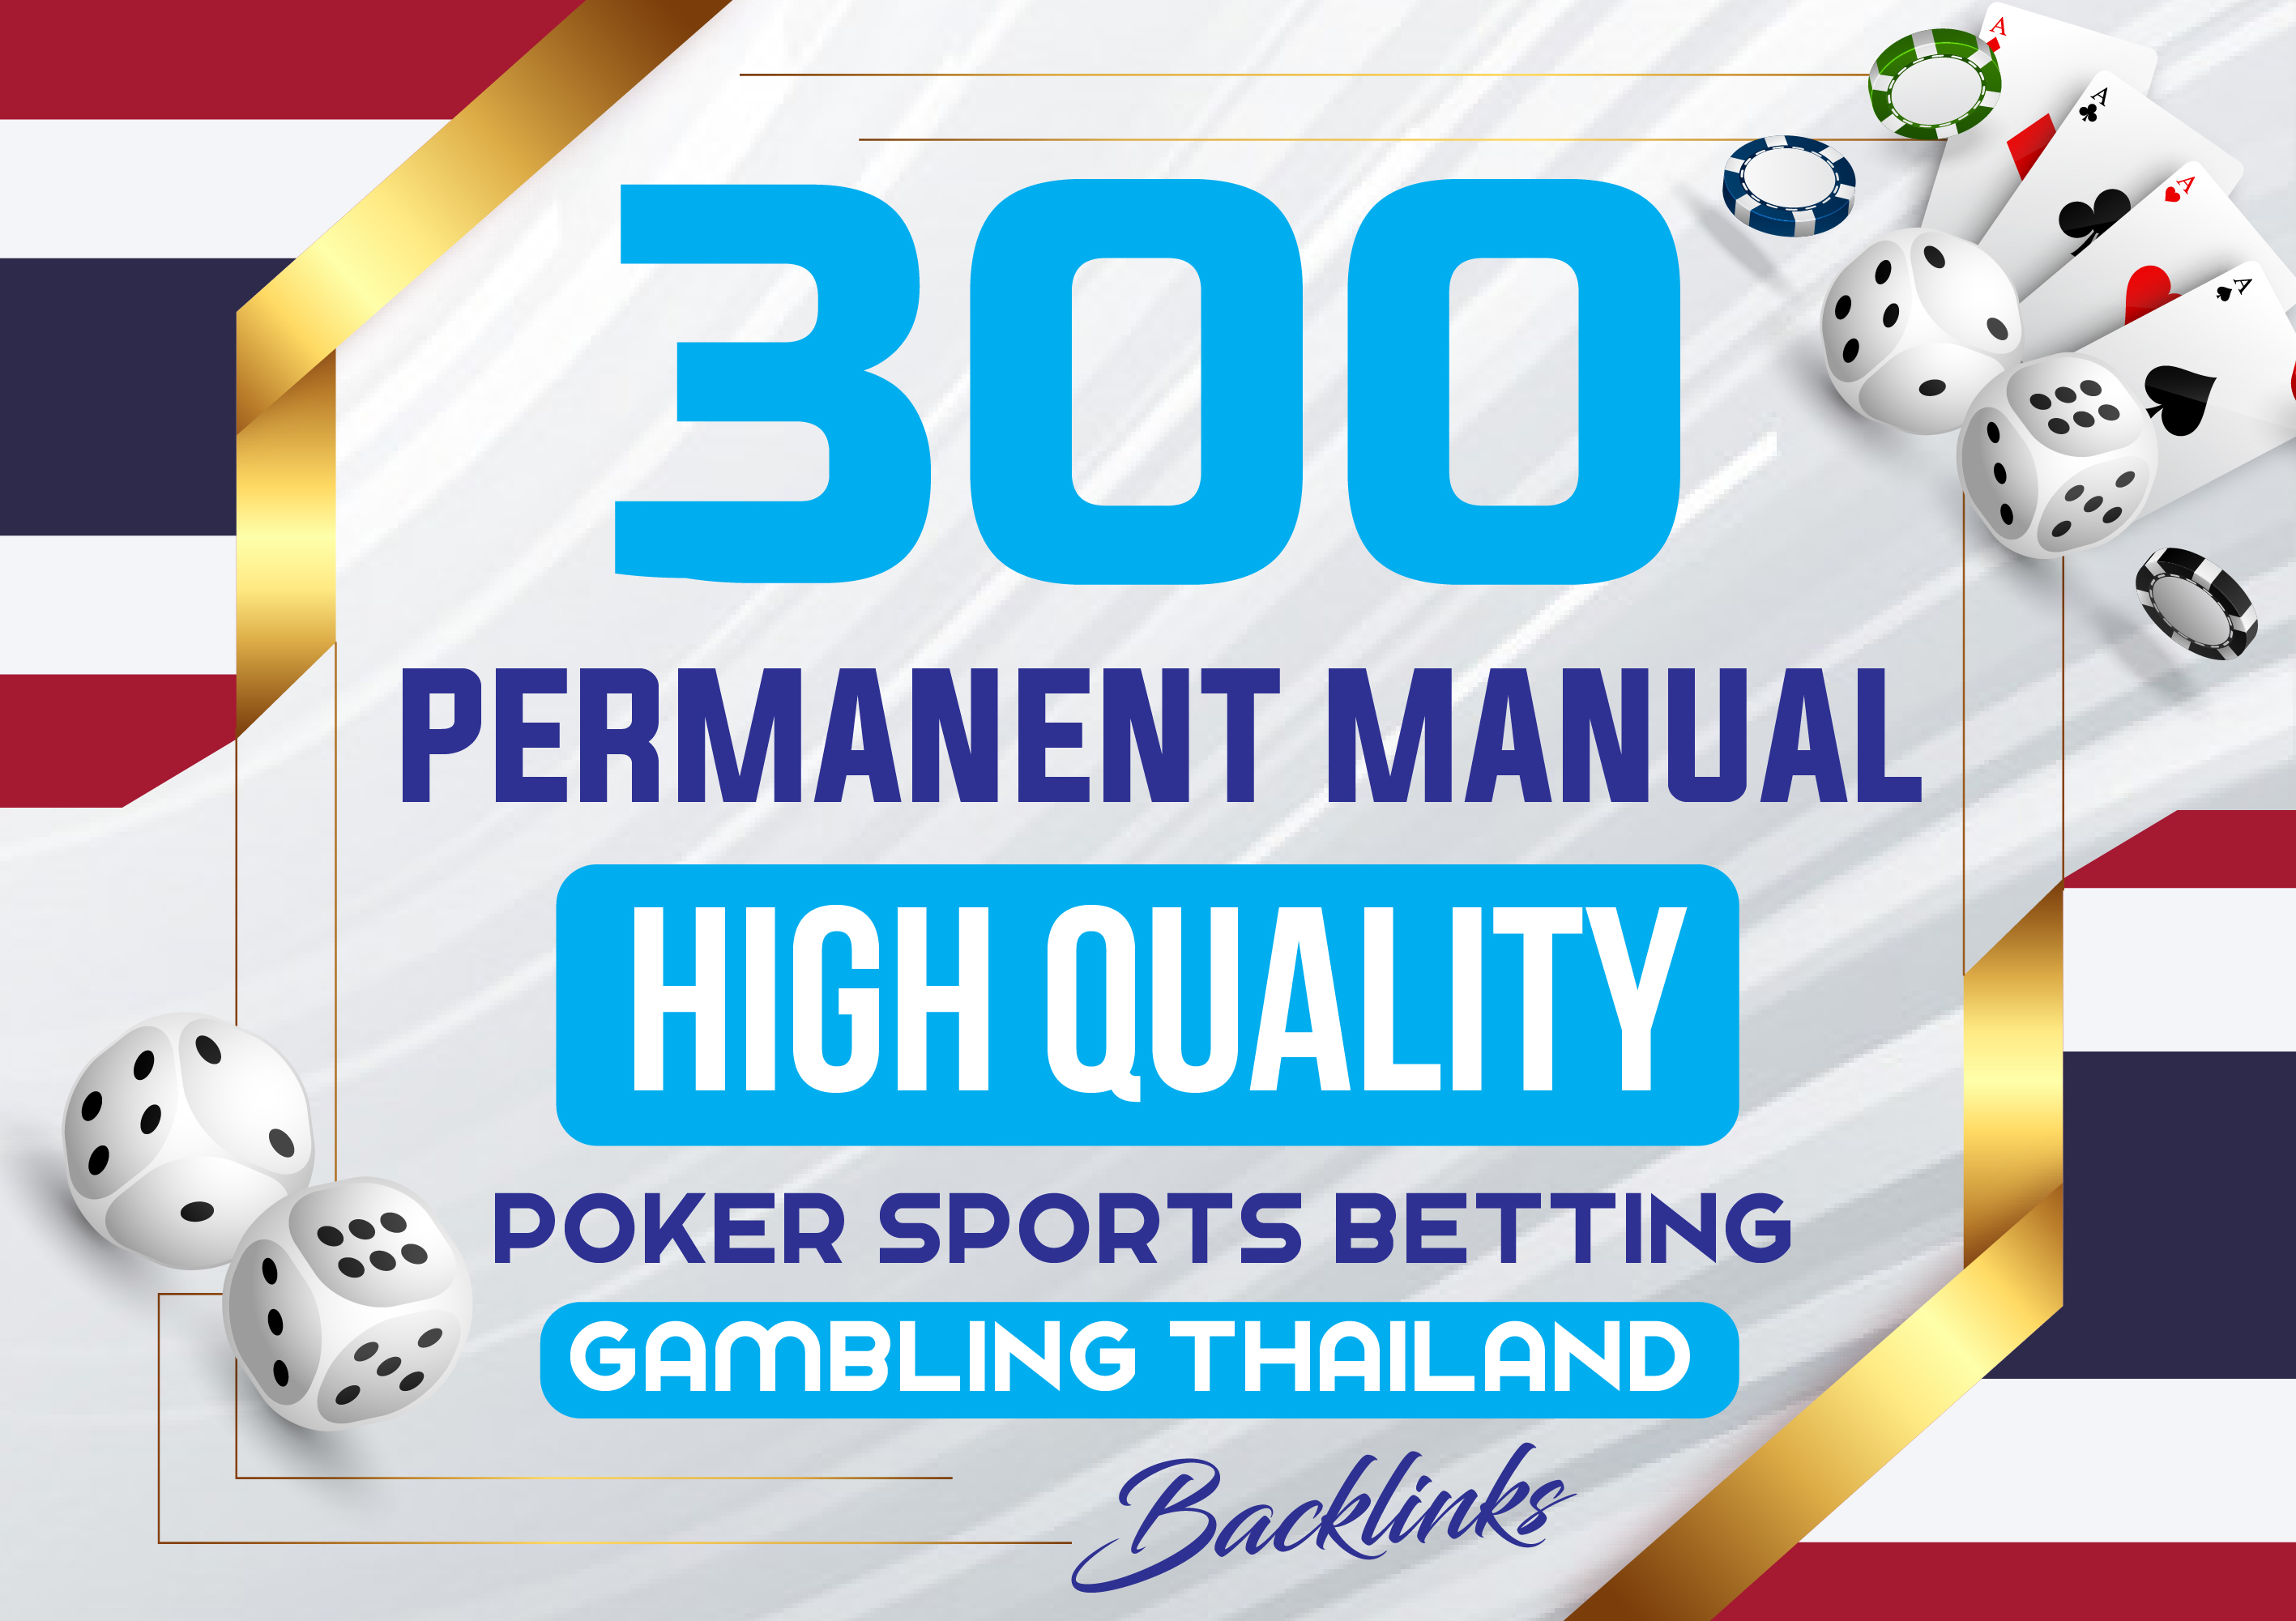 provide 300 Permanent Manual high quality Poker Sports Betting Gambling Thailand backlinks